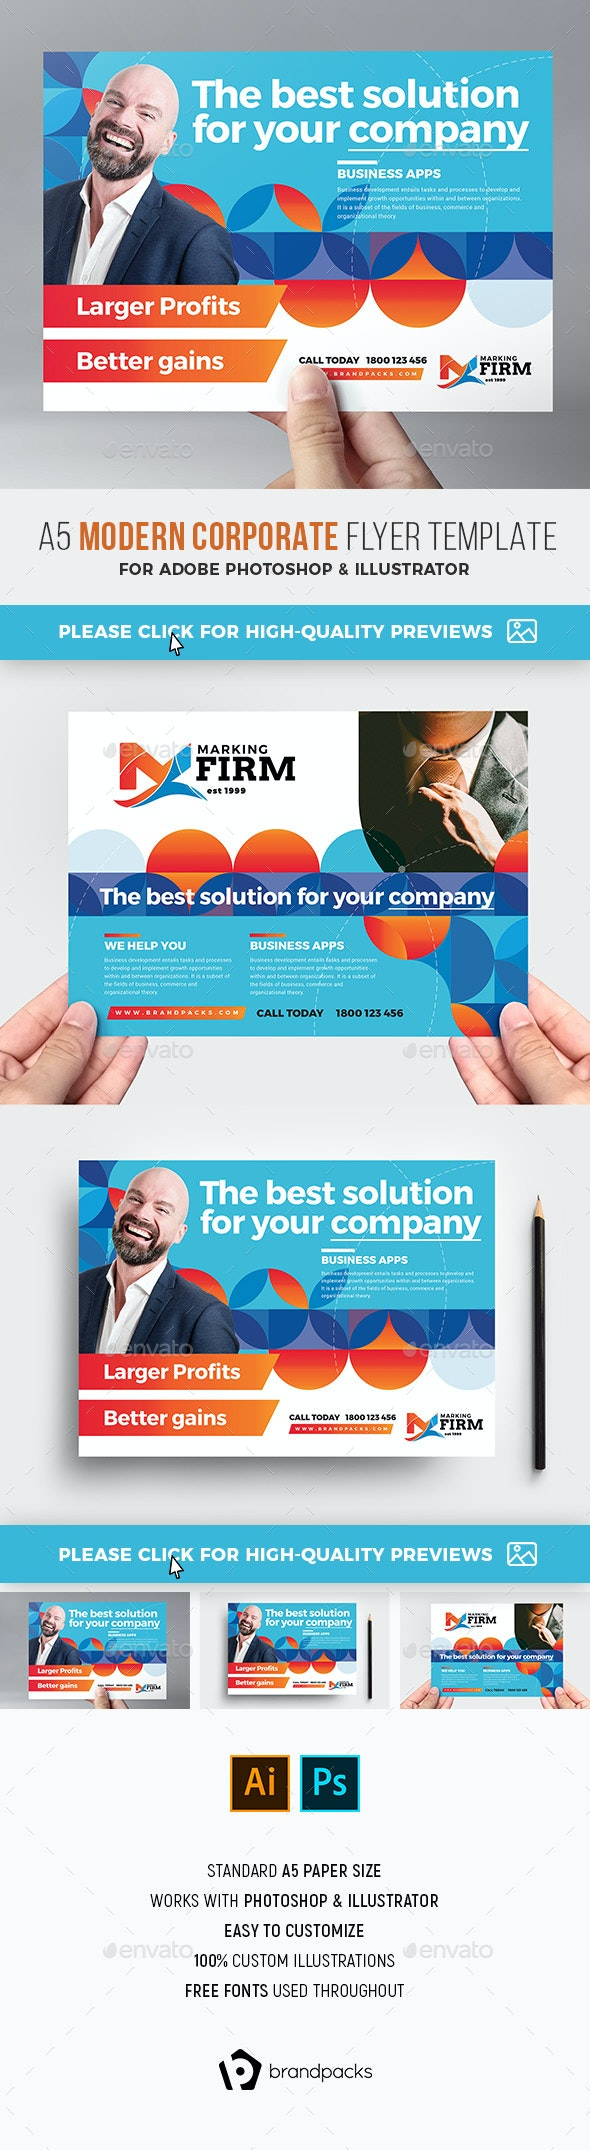 Modern Corporate Flyer Template - Corporate Flyers